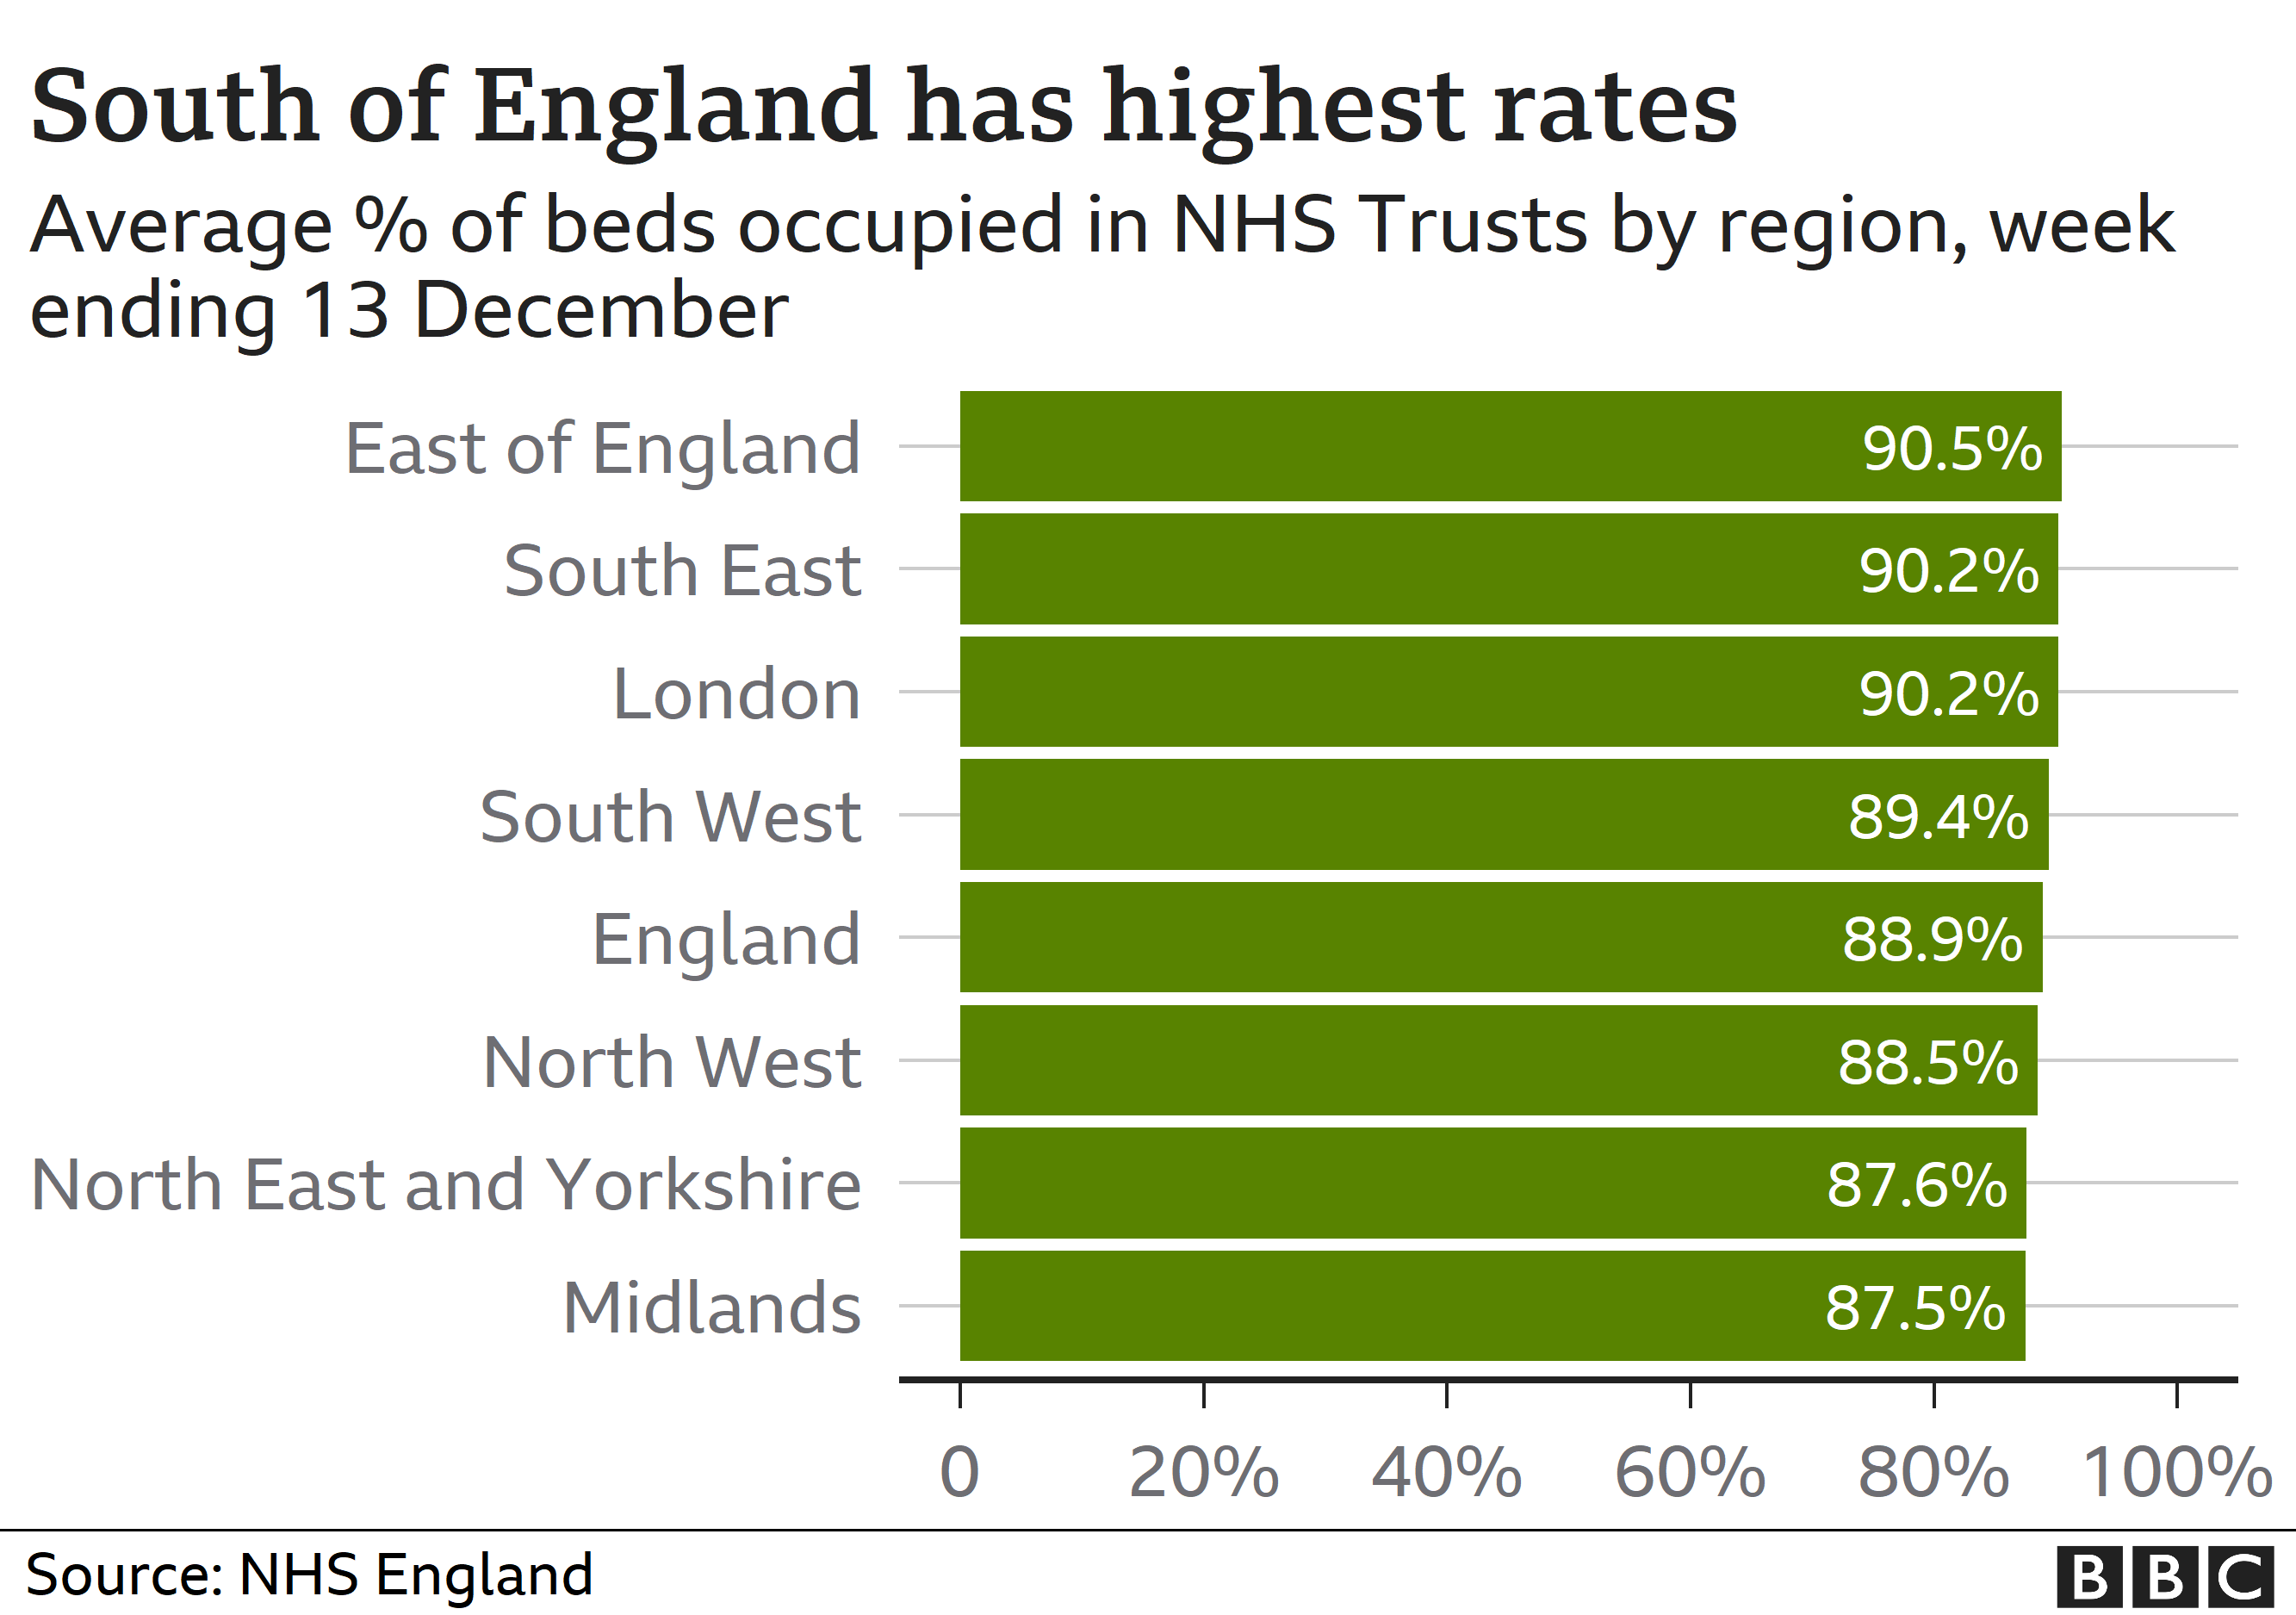 Highest rates of bed occupancy in the south